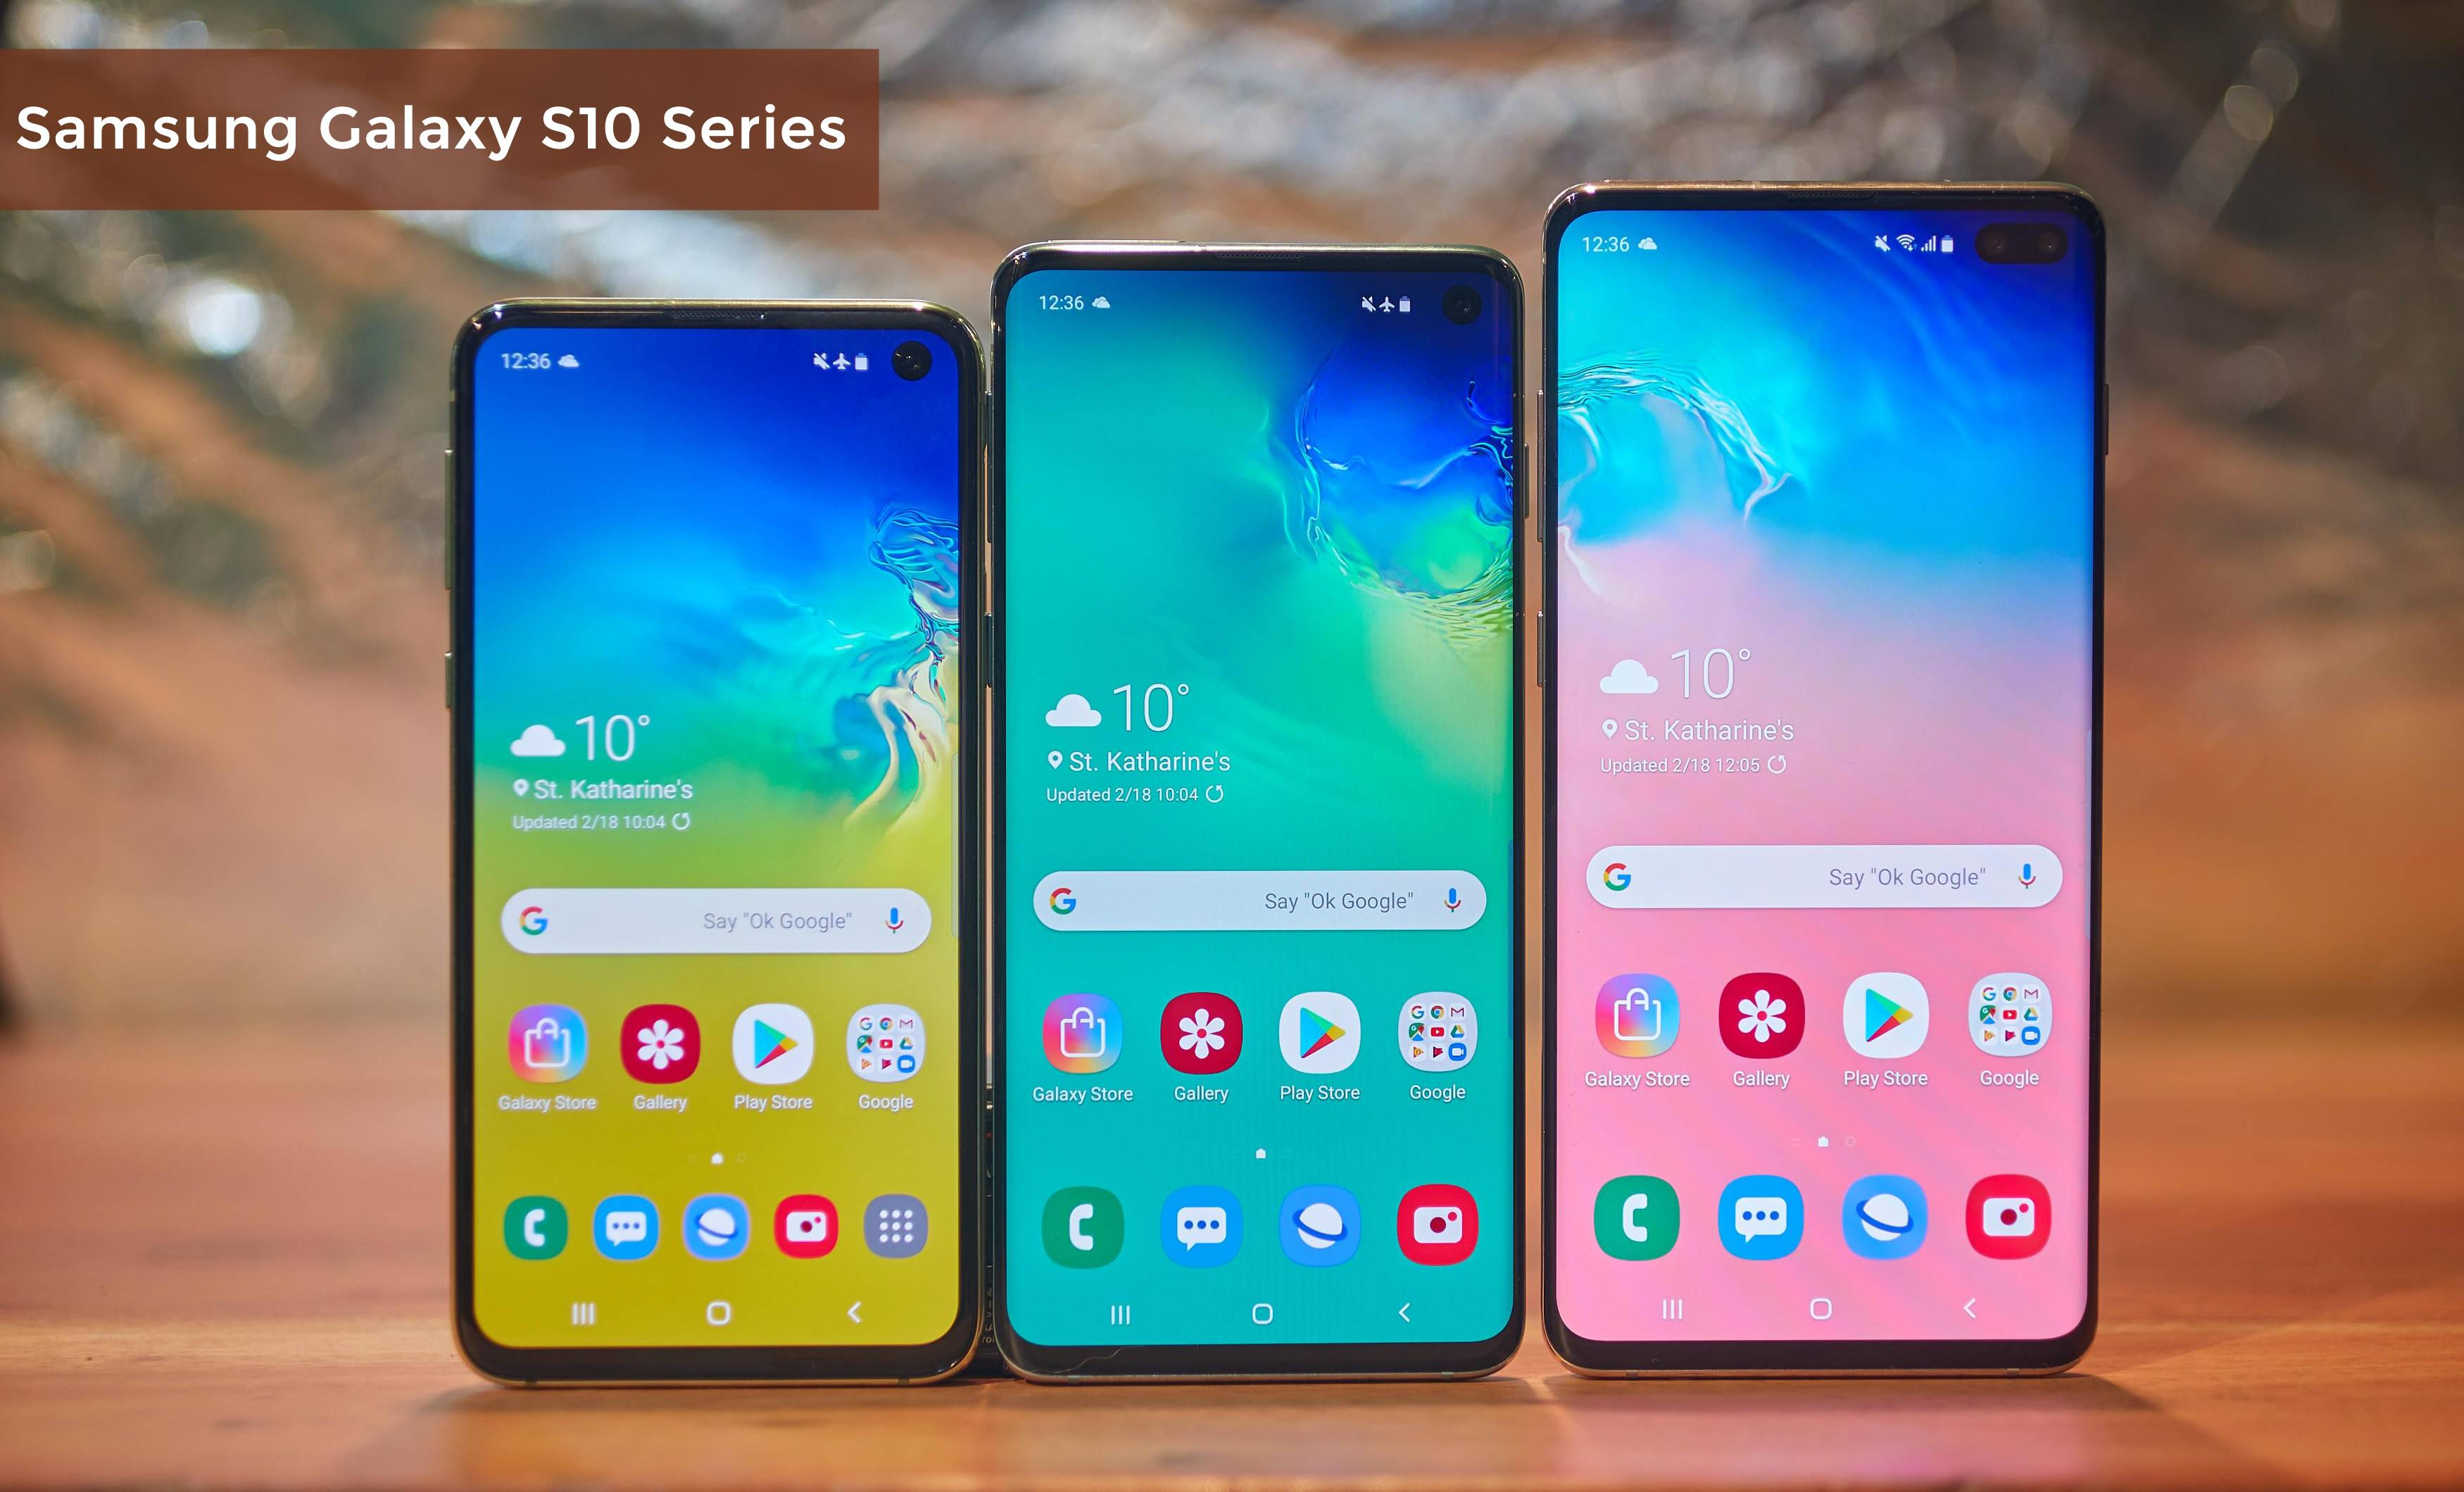 With Incredible features : Samsung launched its Galaxy S10 series smartphones